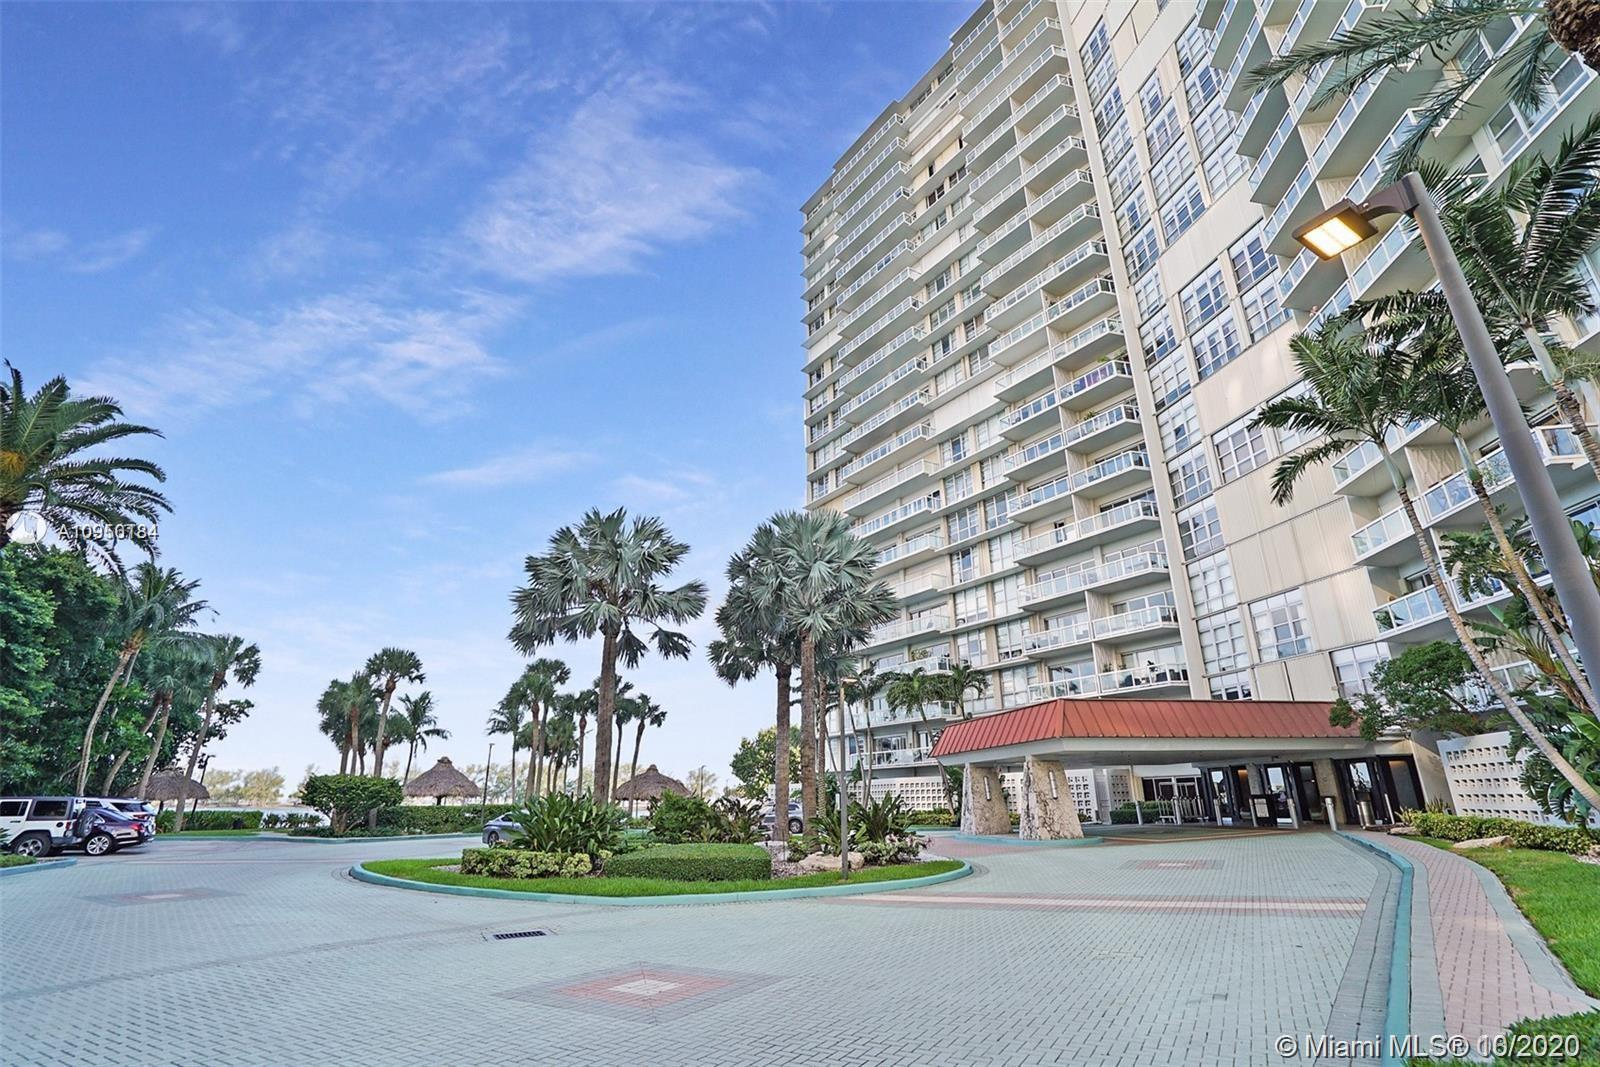 The Best 2 Bedroom Deal in Brickell Townhouse!  Dramatic-Breathtaking-Direct Biscayne Bay Views. 2 B